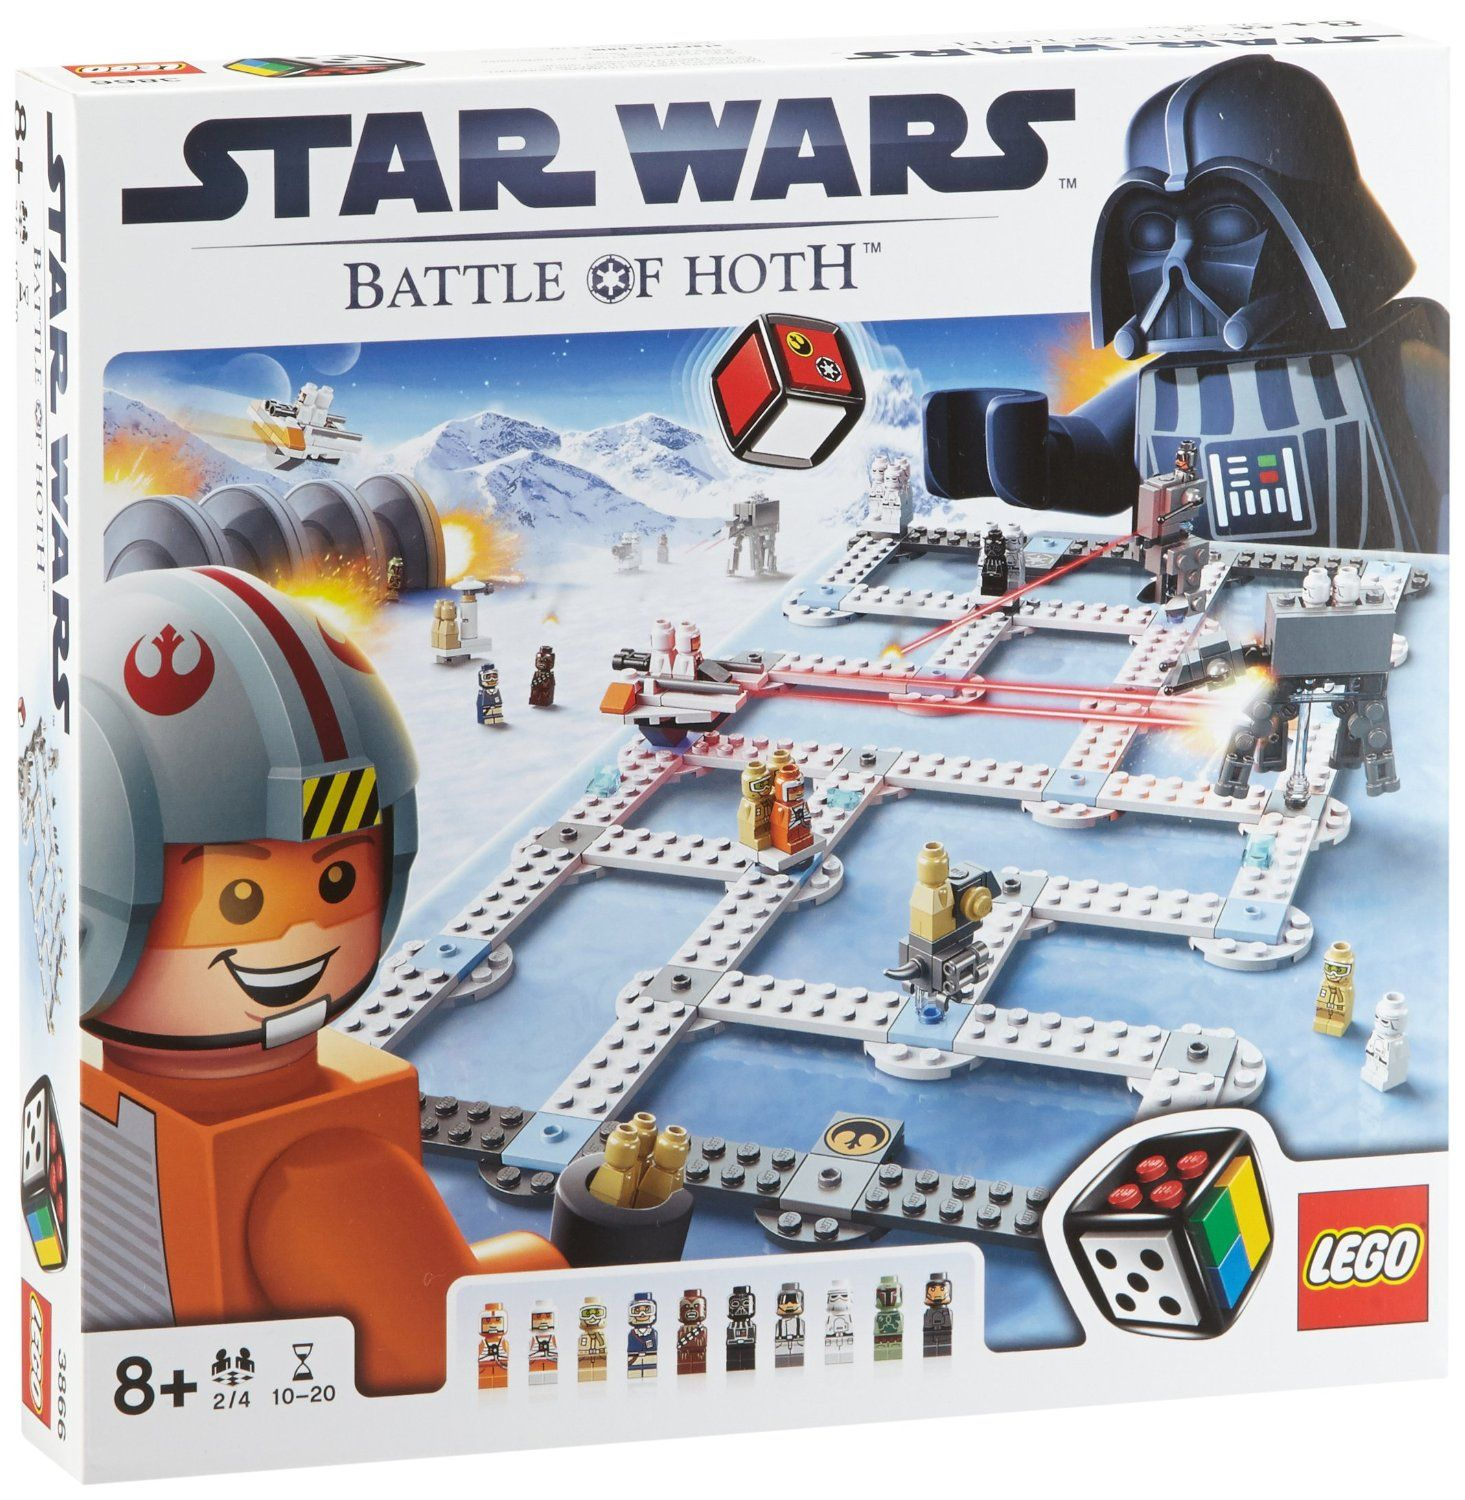 LEGO Games 3866: Star Wars The Battle of Hoth | Lego Creations ...